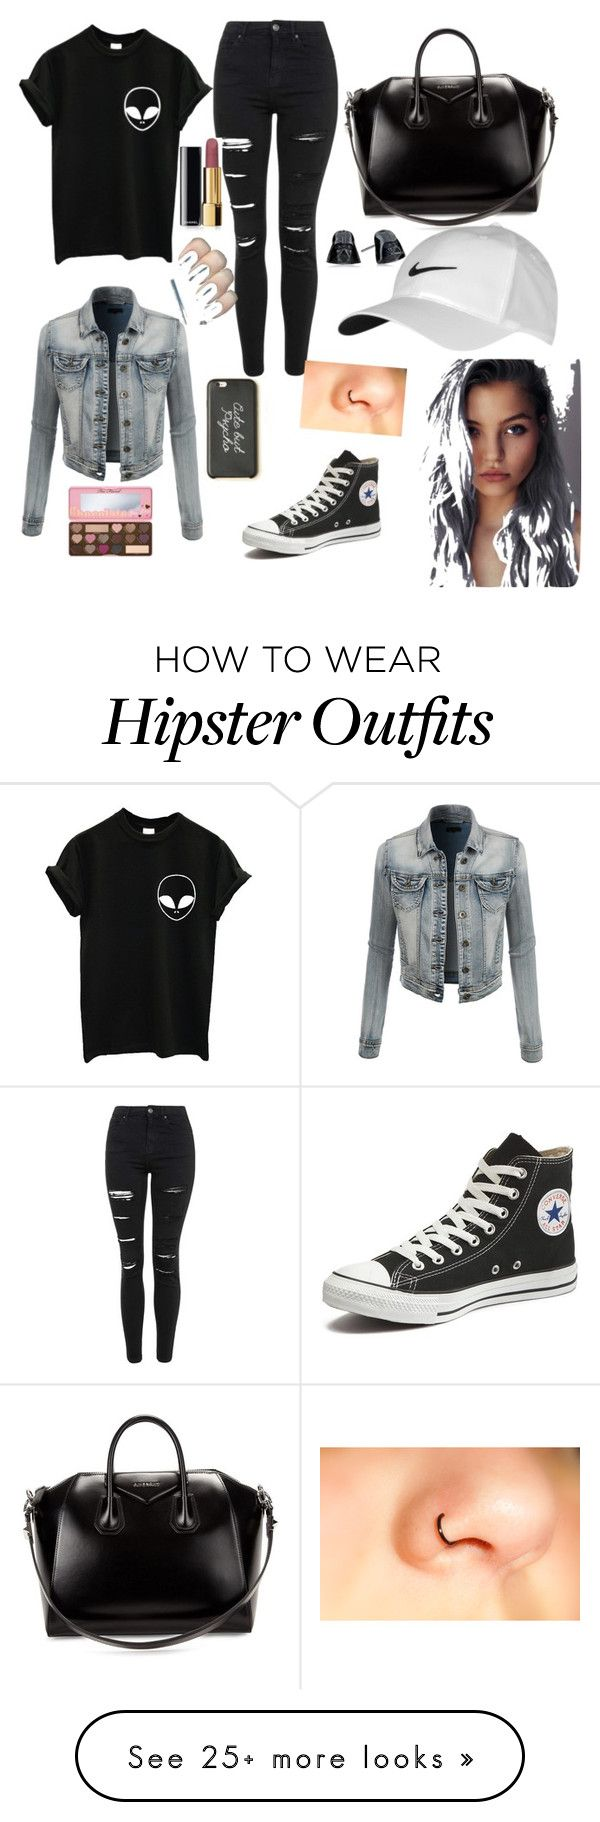 """Everyday look"" by awkkxarii on Polyvore featuring Topshop, LE3NO, Converse, Givenchy, NIKE and Chanel"